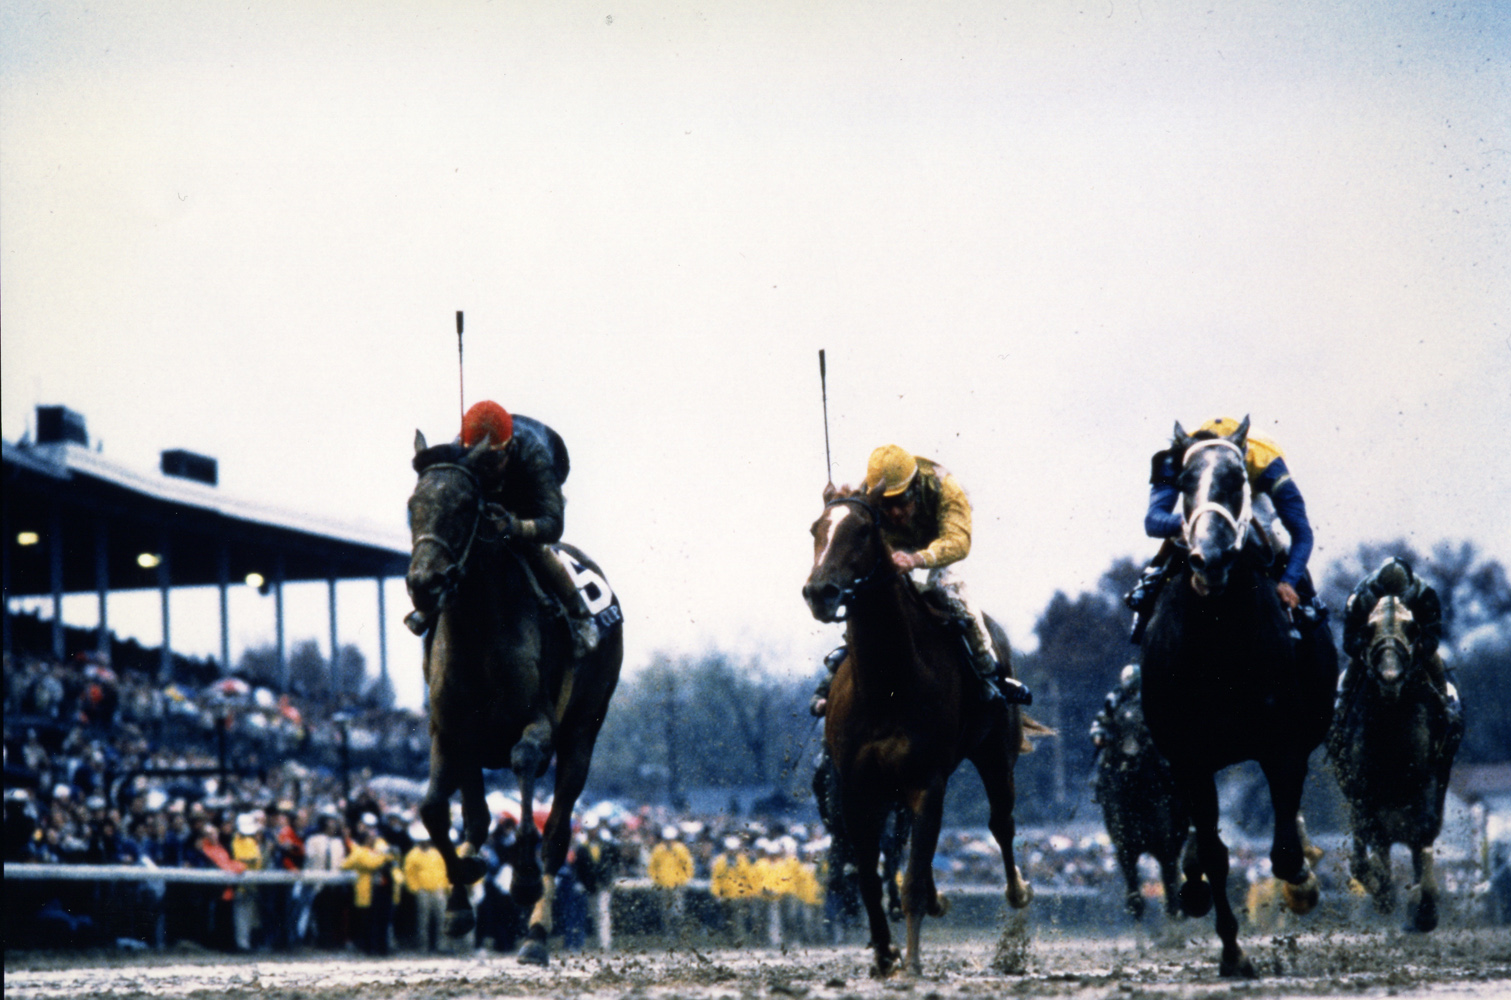 Personal Ensign (Randy Romero up) charging down the stretch to win the 1988 Breeders' Cup Distaff at Churchill Downs (Breeders' Cup Photo/Museum Collection)